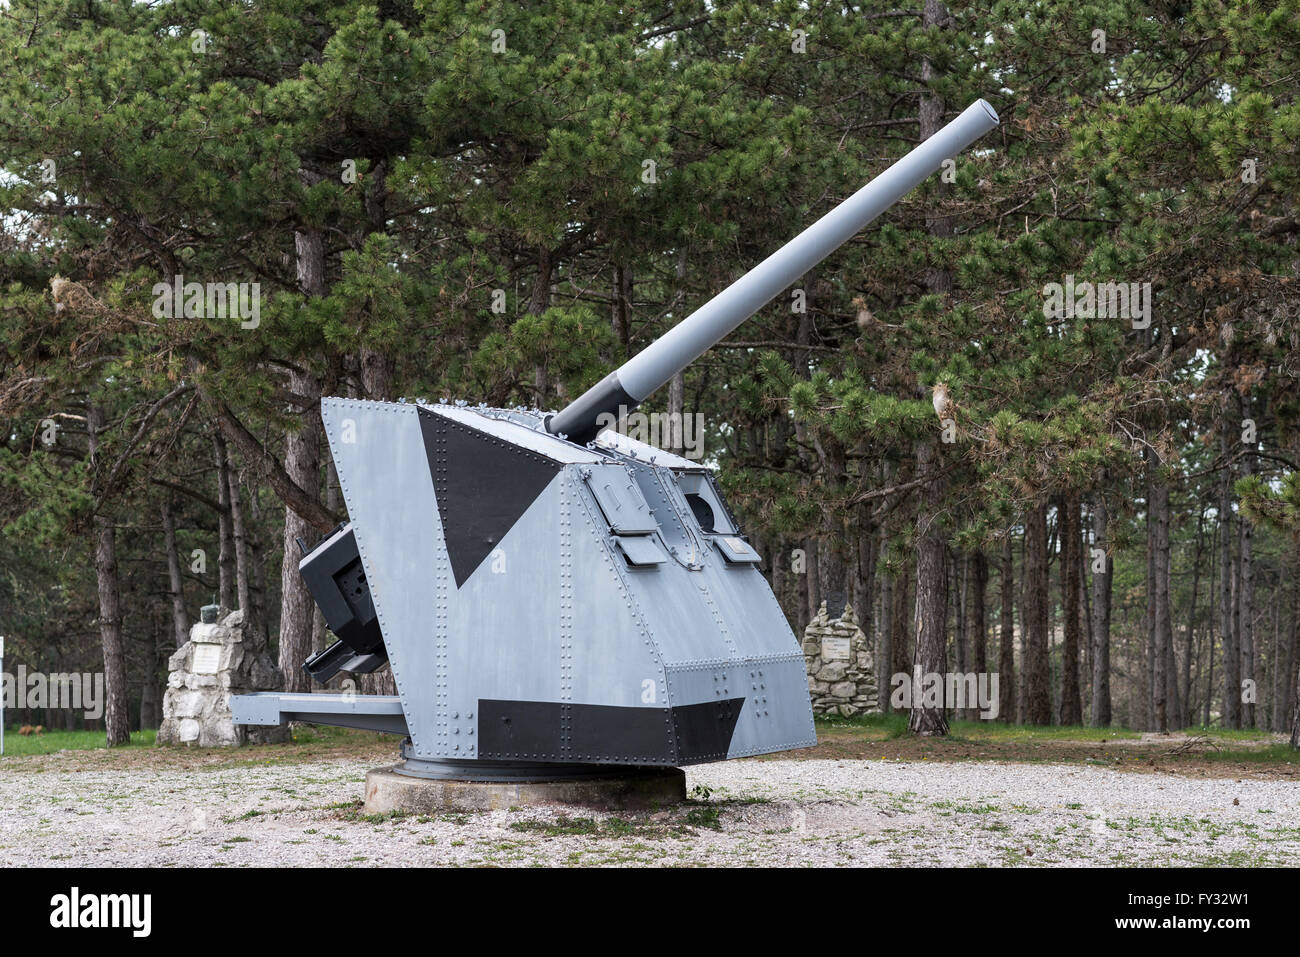 Cannon 100-47, 1937, World War II, park of remembrance, open-air museum on the Colle Sant'Elia hill, Redipuglia - Stock Image